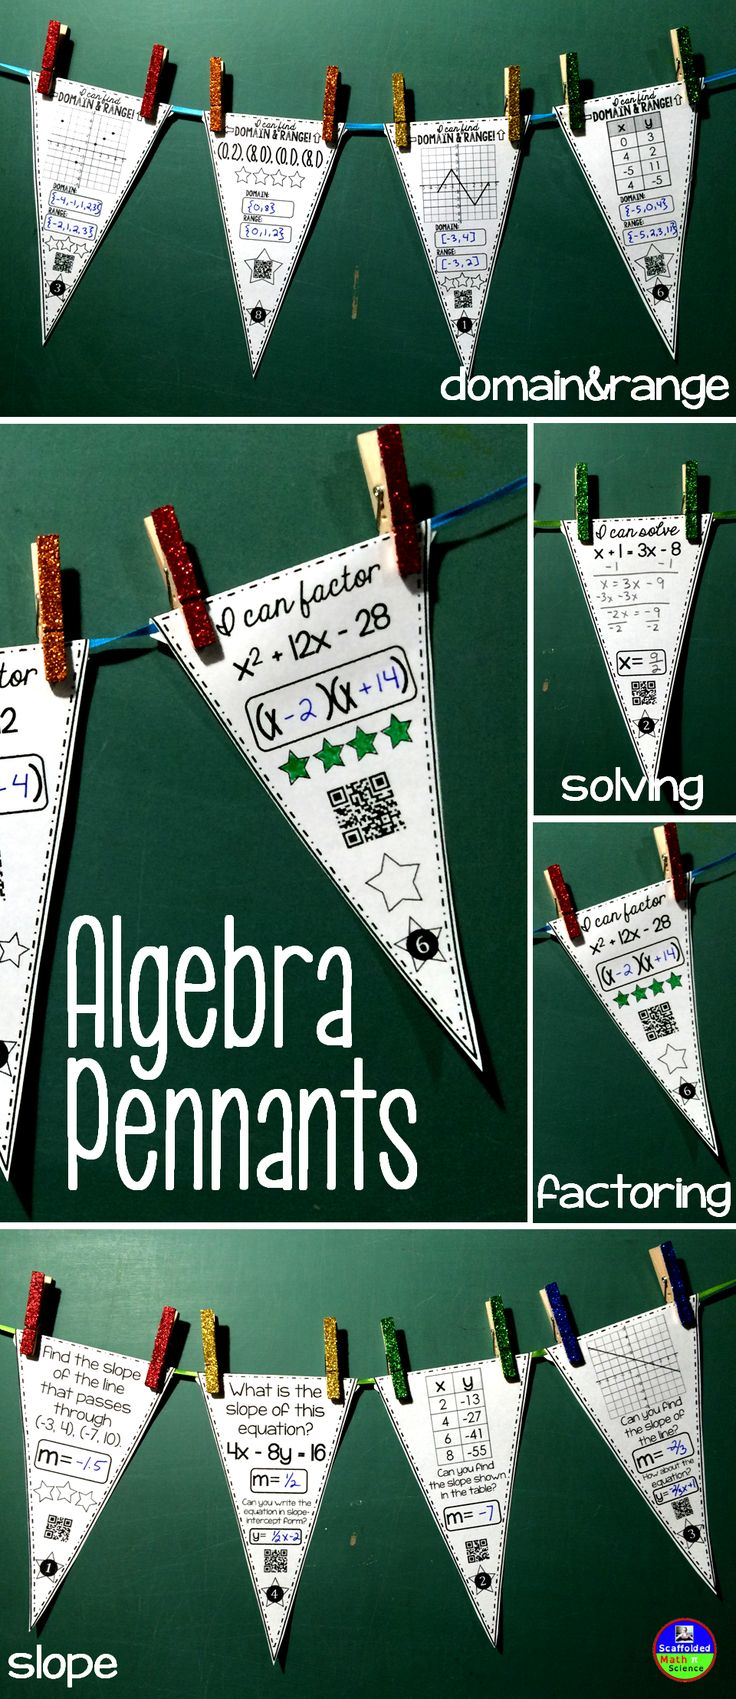 Practice Algebra while building community and classroom decor! Included are 20 pennants for each of 4 topics. TOPICS INCLUDE: slope, solving equations (x on both sides), factoring quadratic trinomials (A=1) and domain and range. 160 pennants in all (80 with QR codes, 80 without), optional student answer sheets and answer keys.